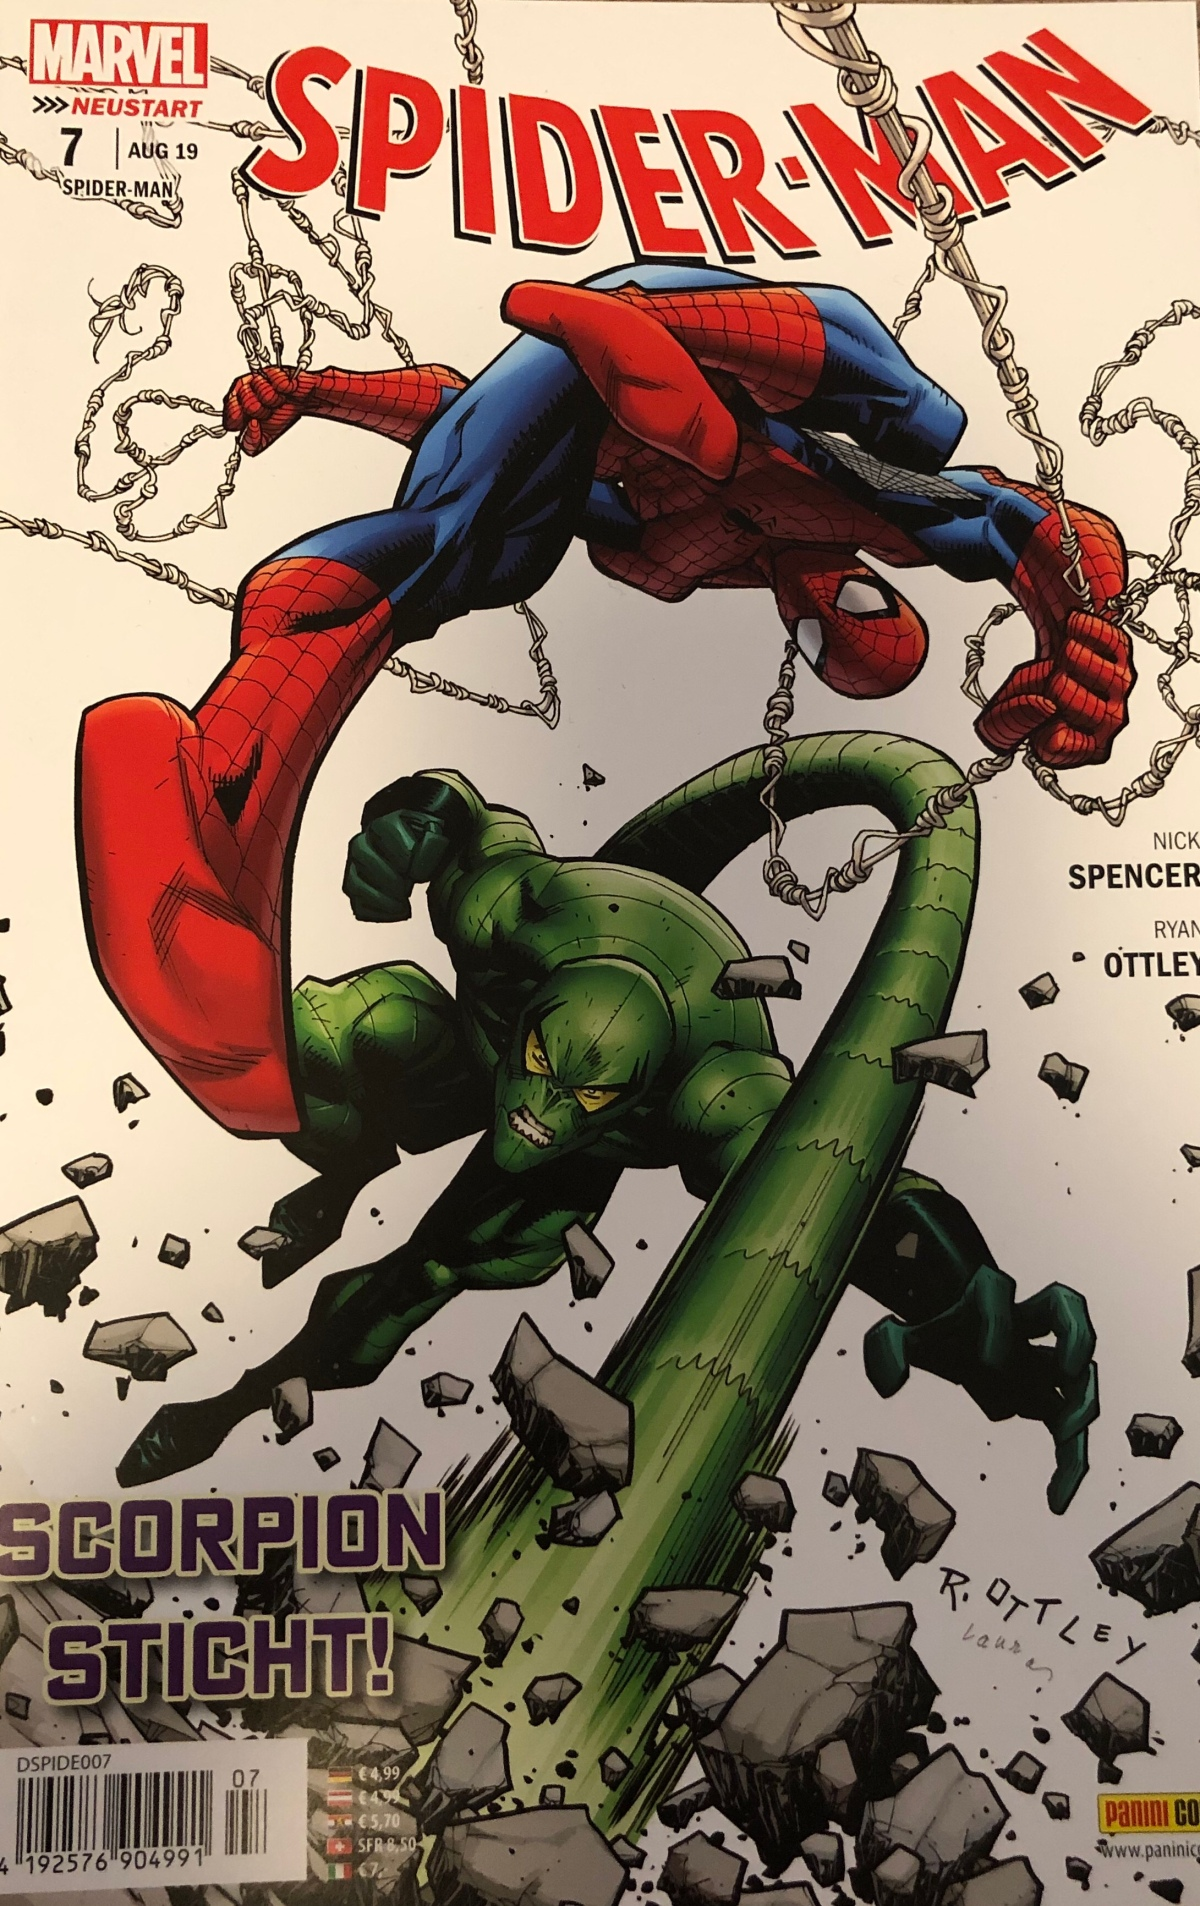 The Amazing Spider-Man #11 & #12 |Review